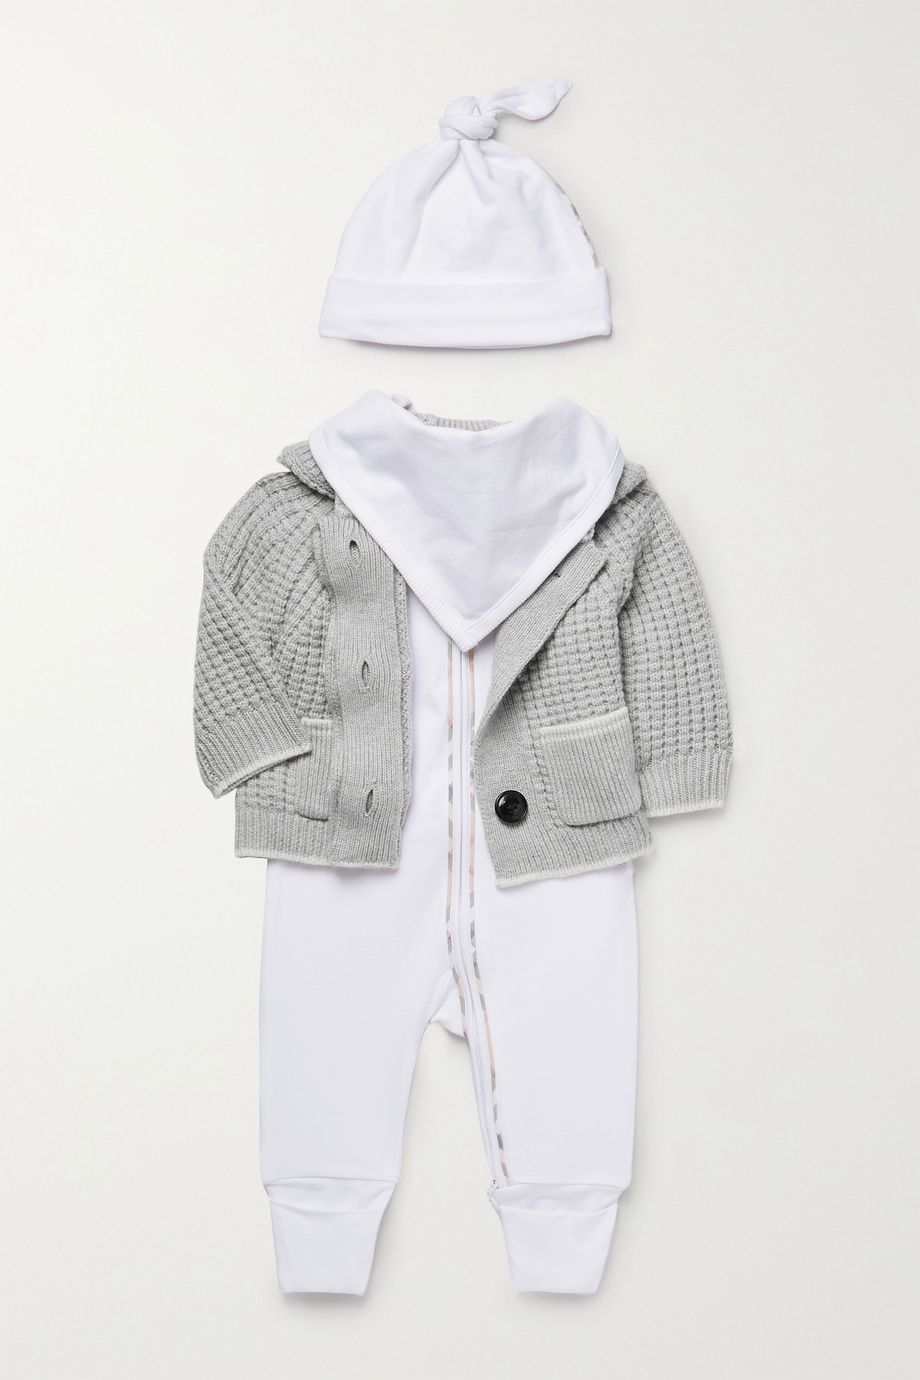 Burberry Kids Months 1 - 12 stretch-cotton jersey onesie, hat and bib set